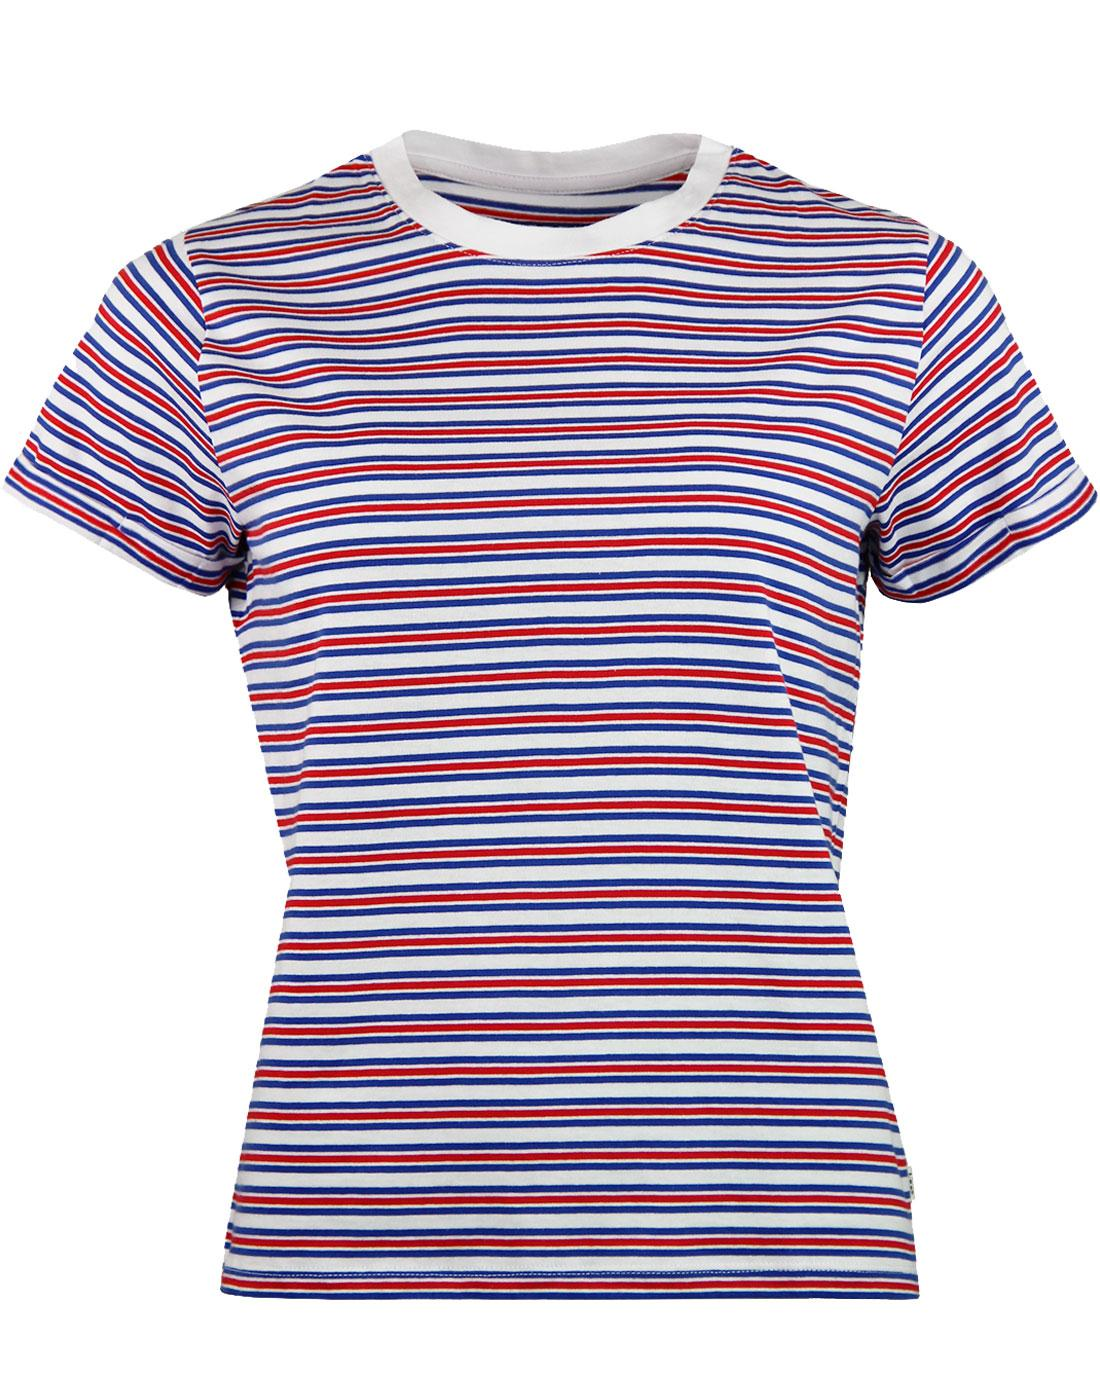 LEE Women's Retro Short Sleeve Multi Stripe Tee I